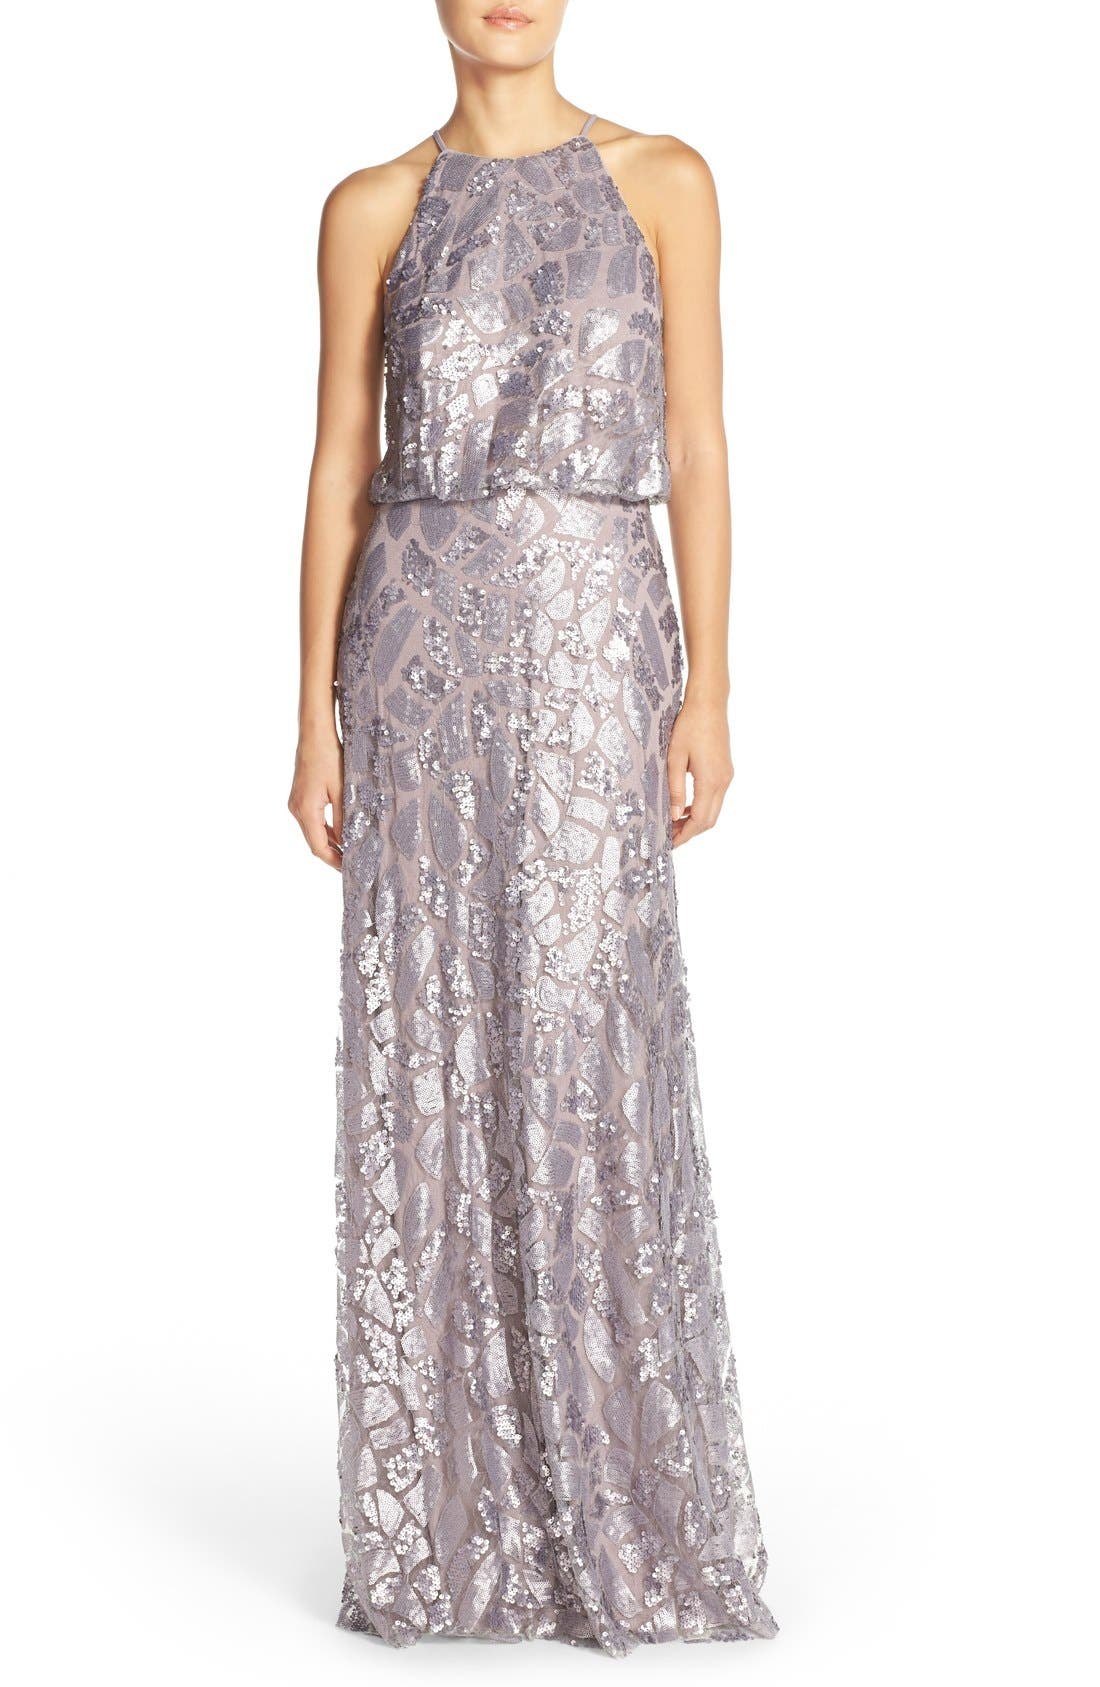 Alternate Image 1 Selected - Donna Morgan 'Tiffany' Sequin Halter-Style Blouson Gown